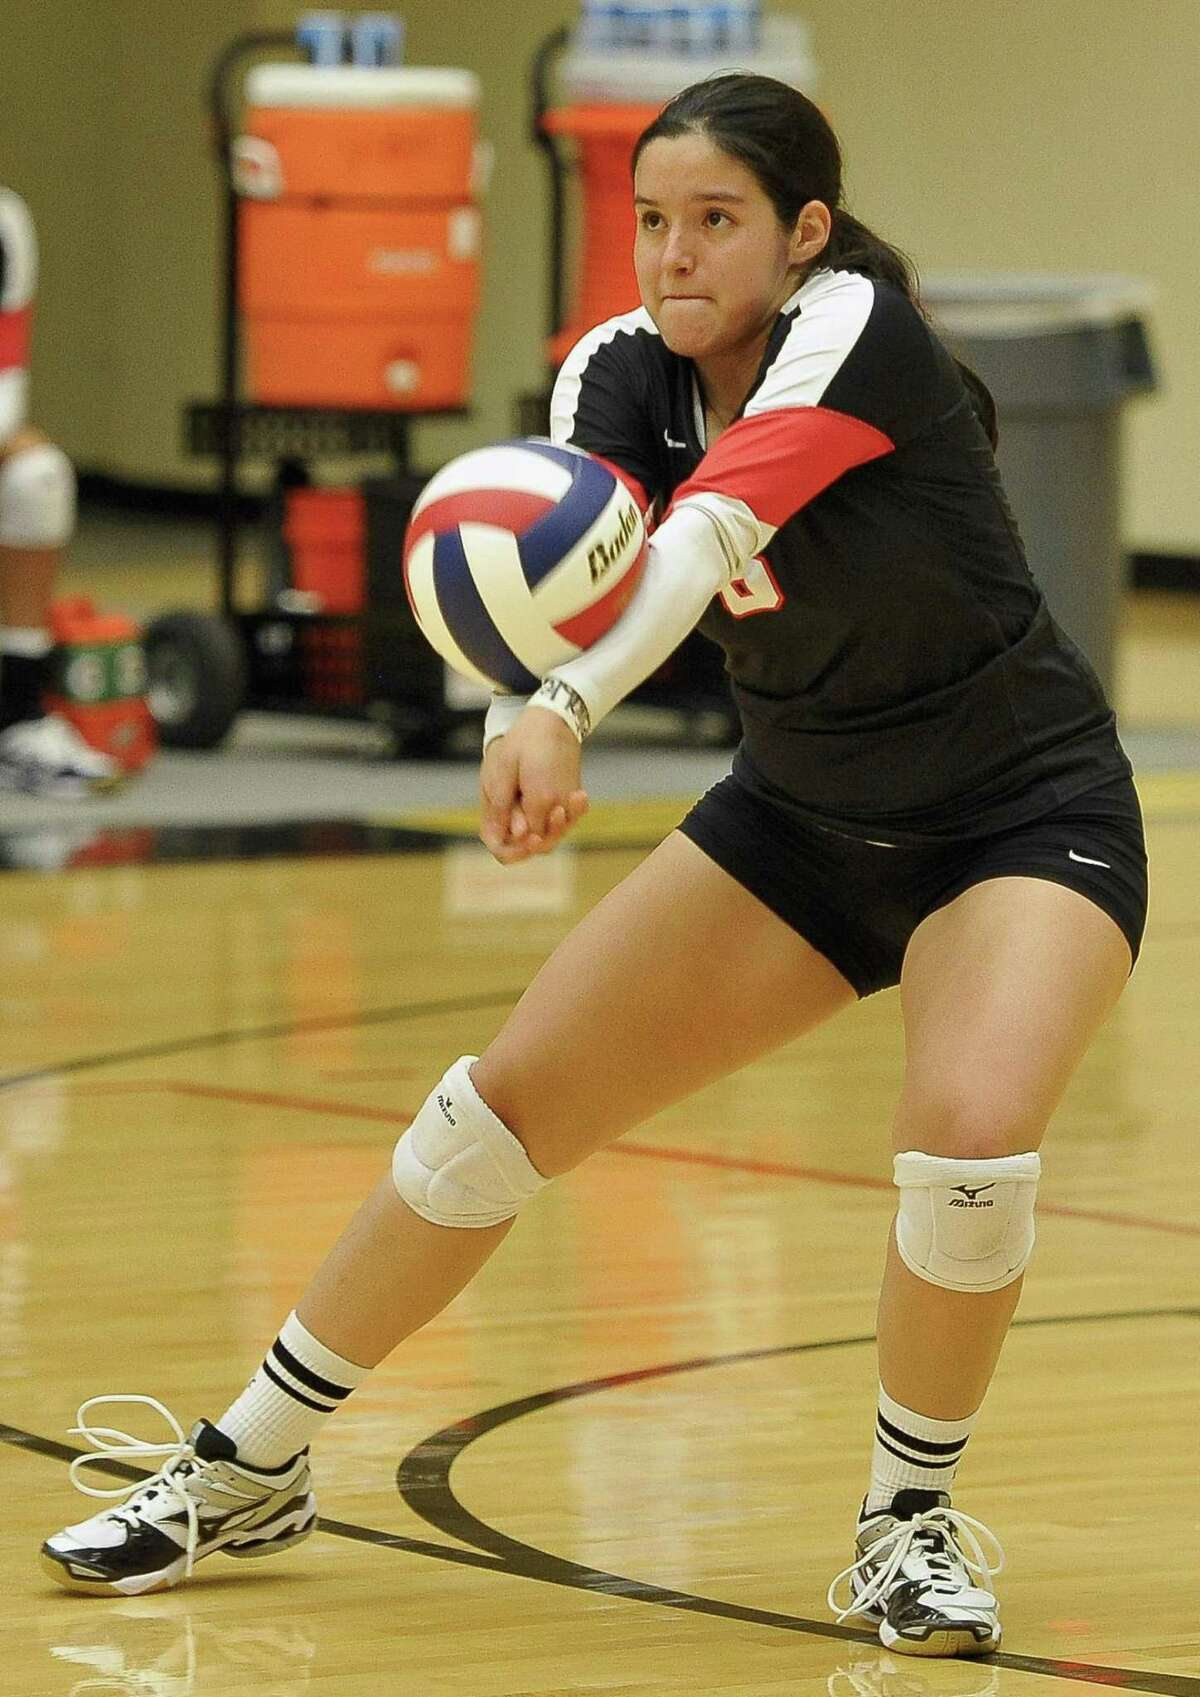 Churchill's Monica Ramon returns the ball during a high school volleyball match against O'Connor, Monday, Aug. 11, 2014, at NEISD Littleton Gymnasium in San Antonio. Churchill won 3-1. (Darren Abate/For the Express-News)